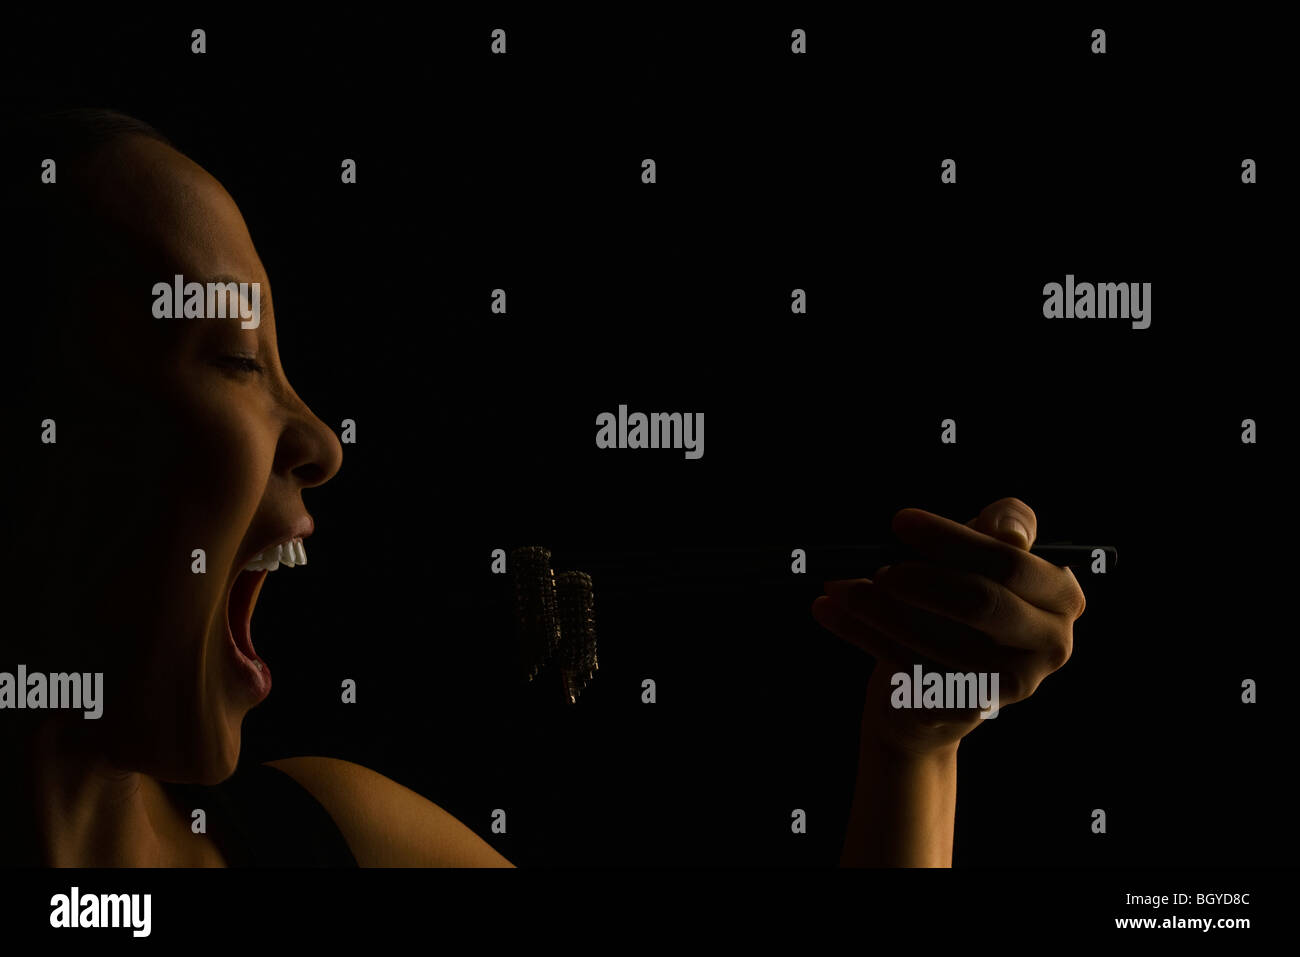 Jewelry indulgence, woman holding earrings to open mouth with chopsticks - Stock Image